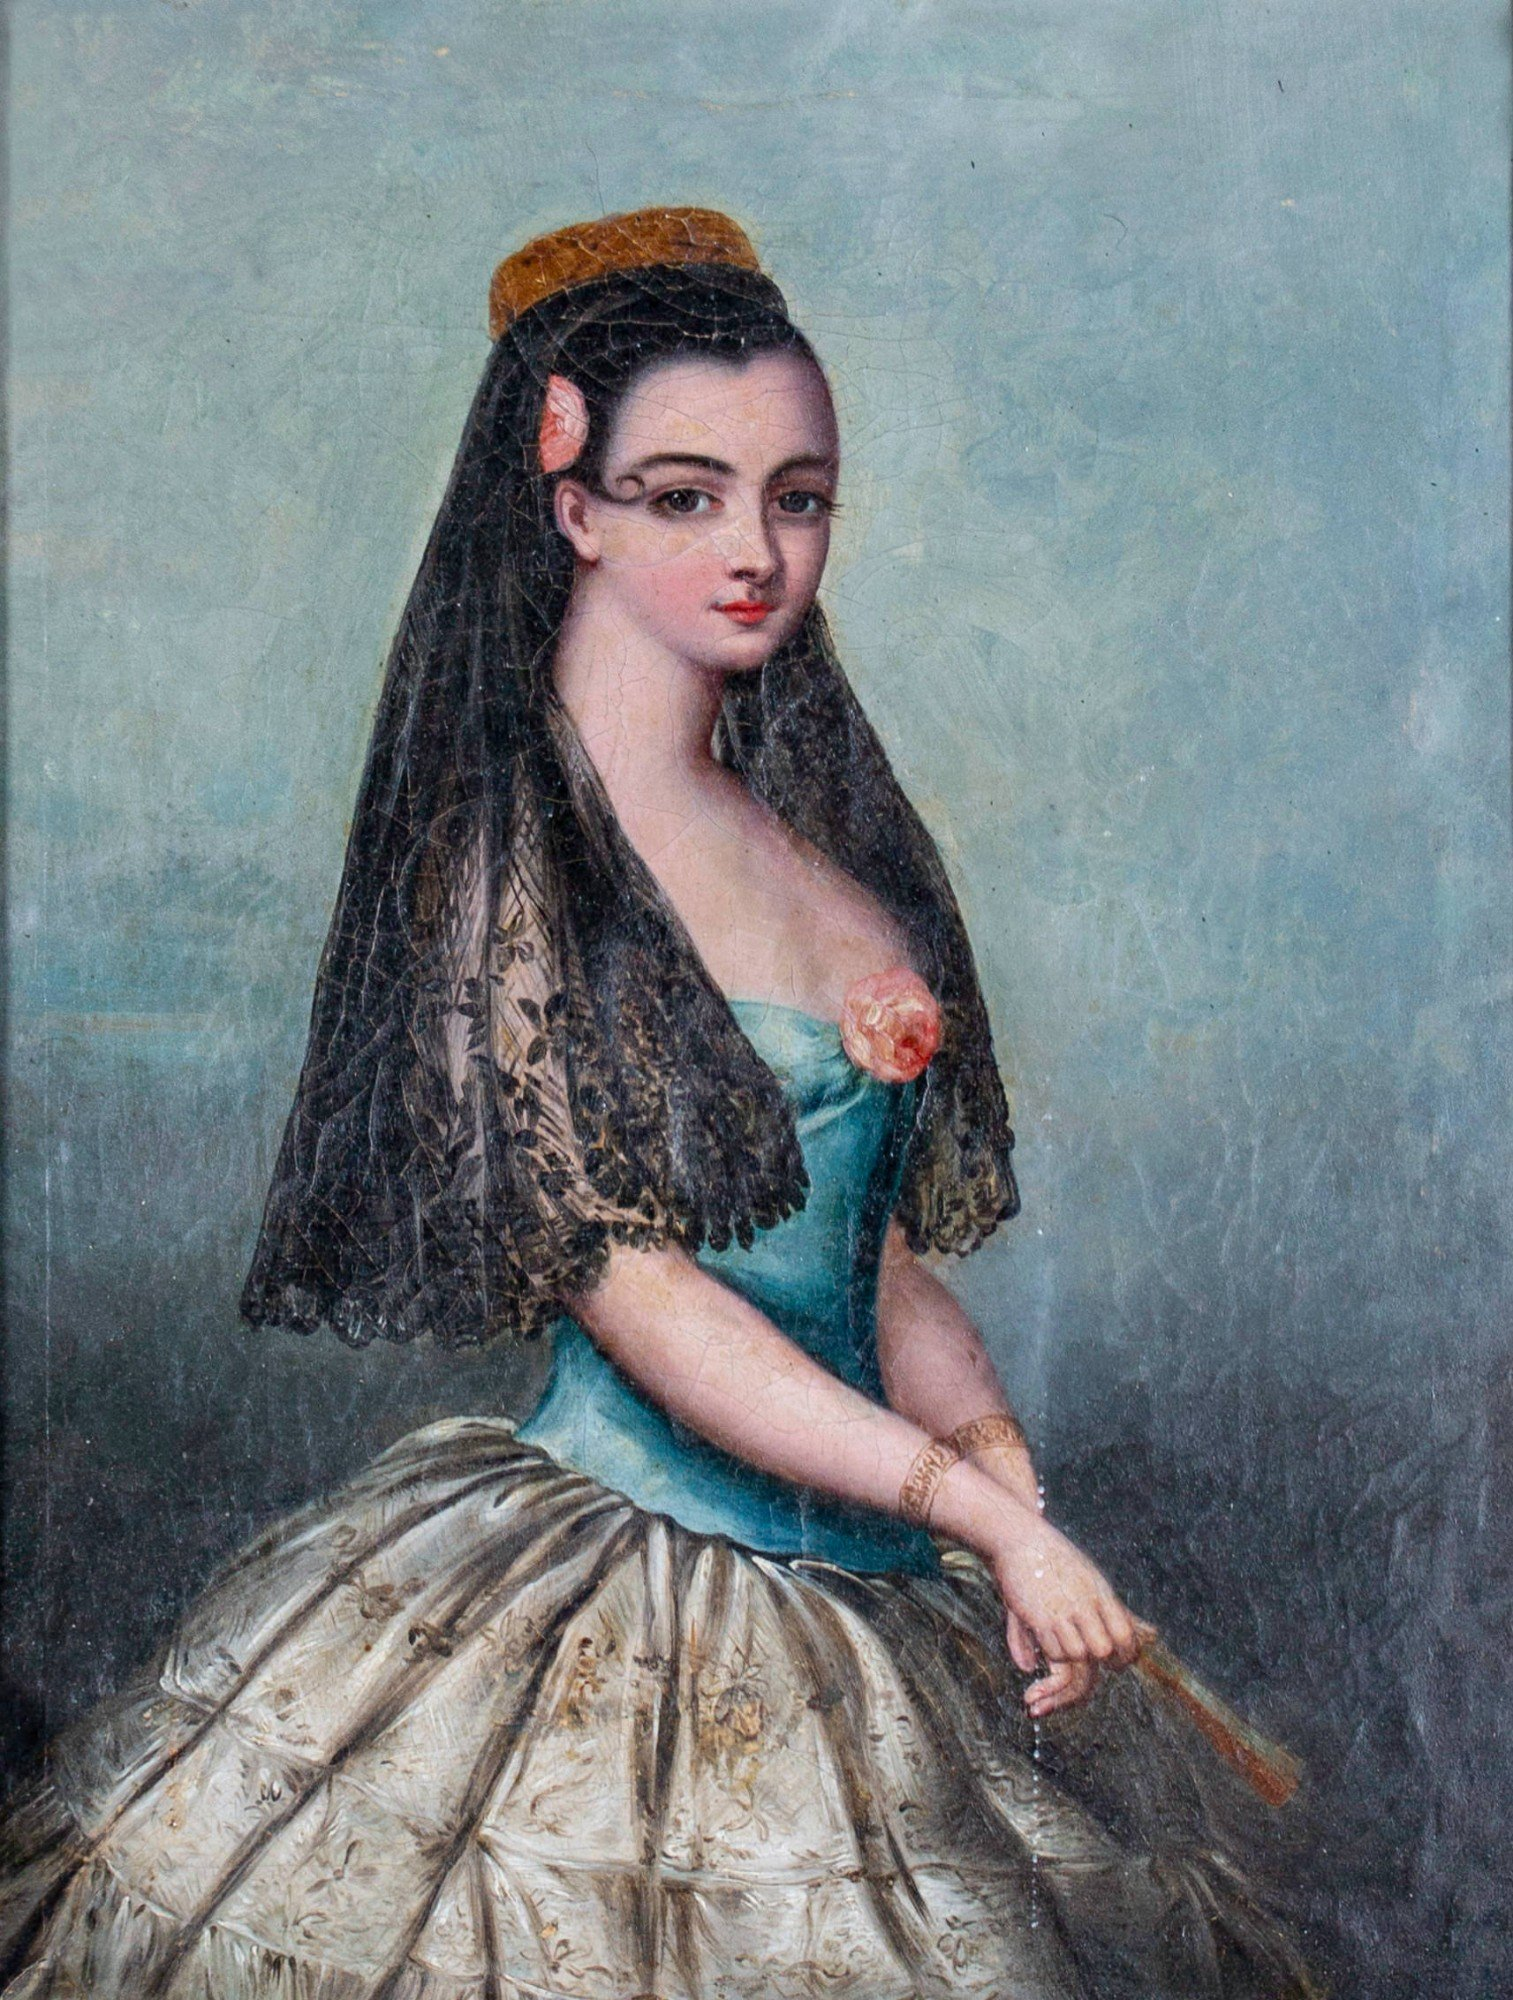 44 Provencal Portrait of Woman with Rose and Veil, 19th Century Spanish  School | Inventory | WOLFS Fine Paintings and Sculpture